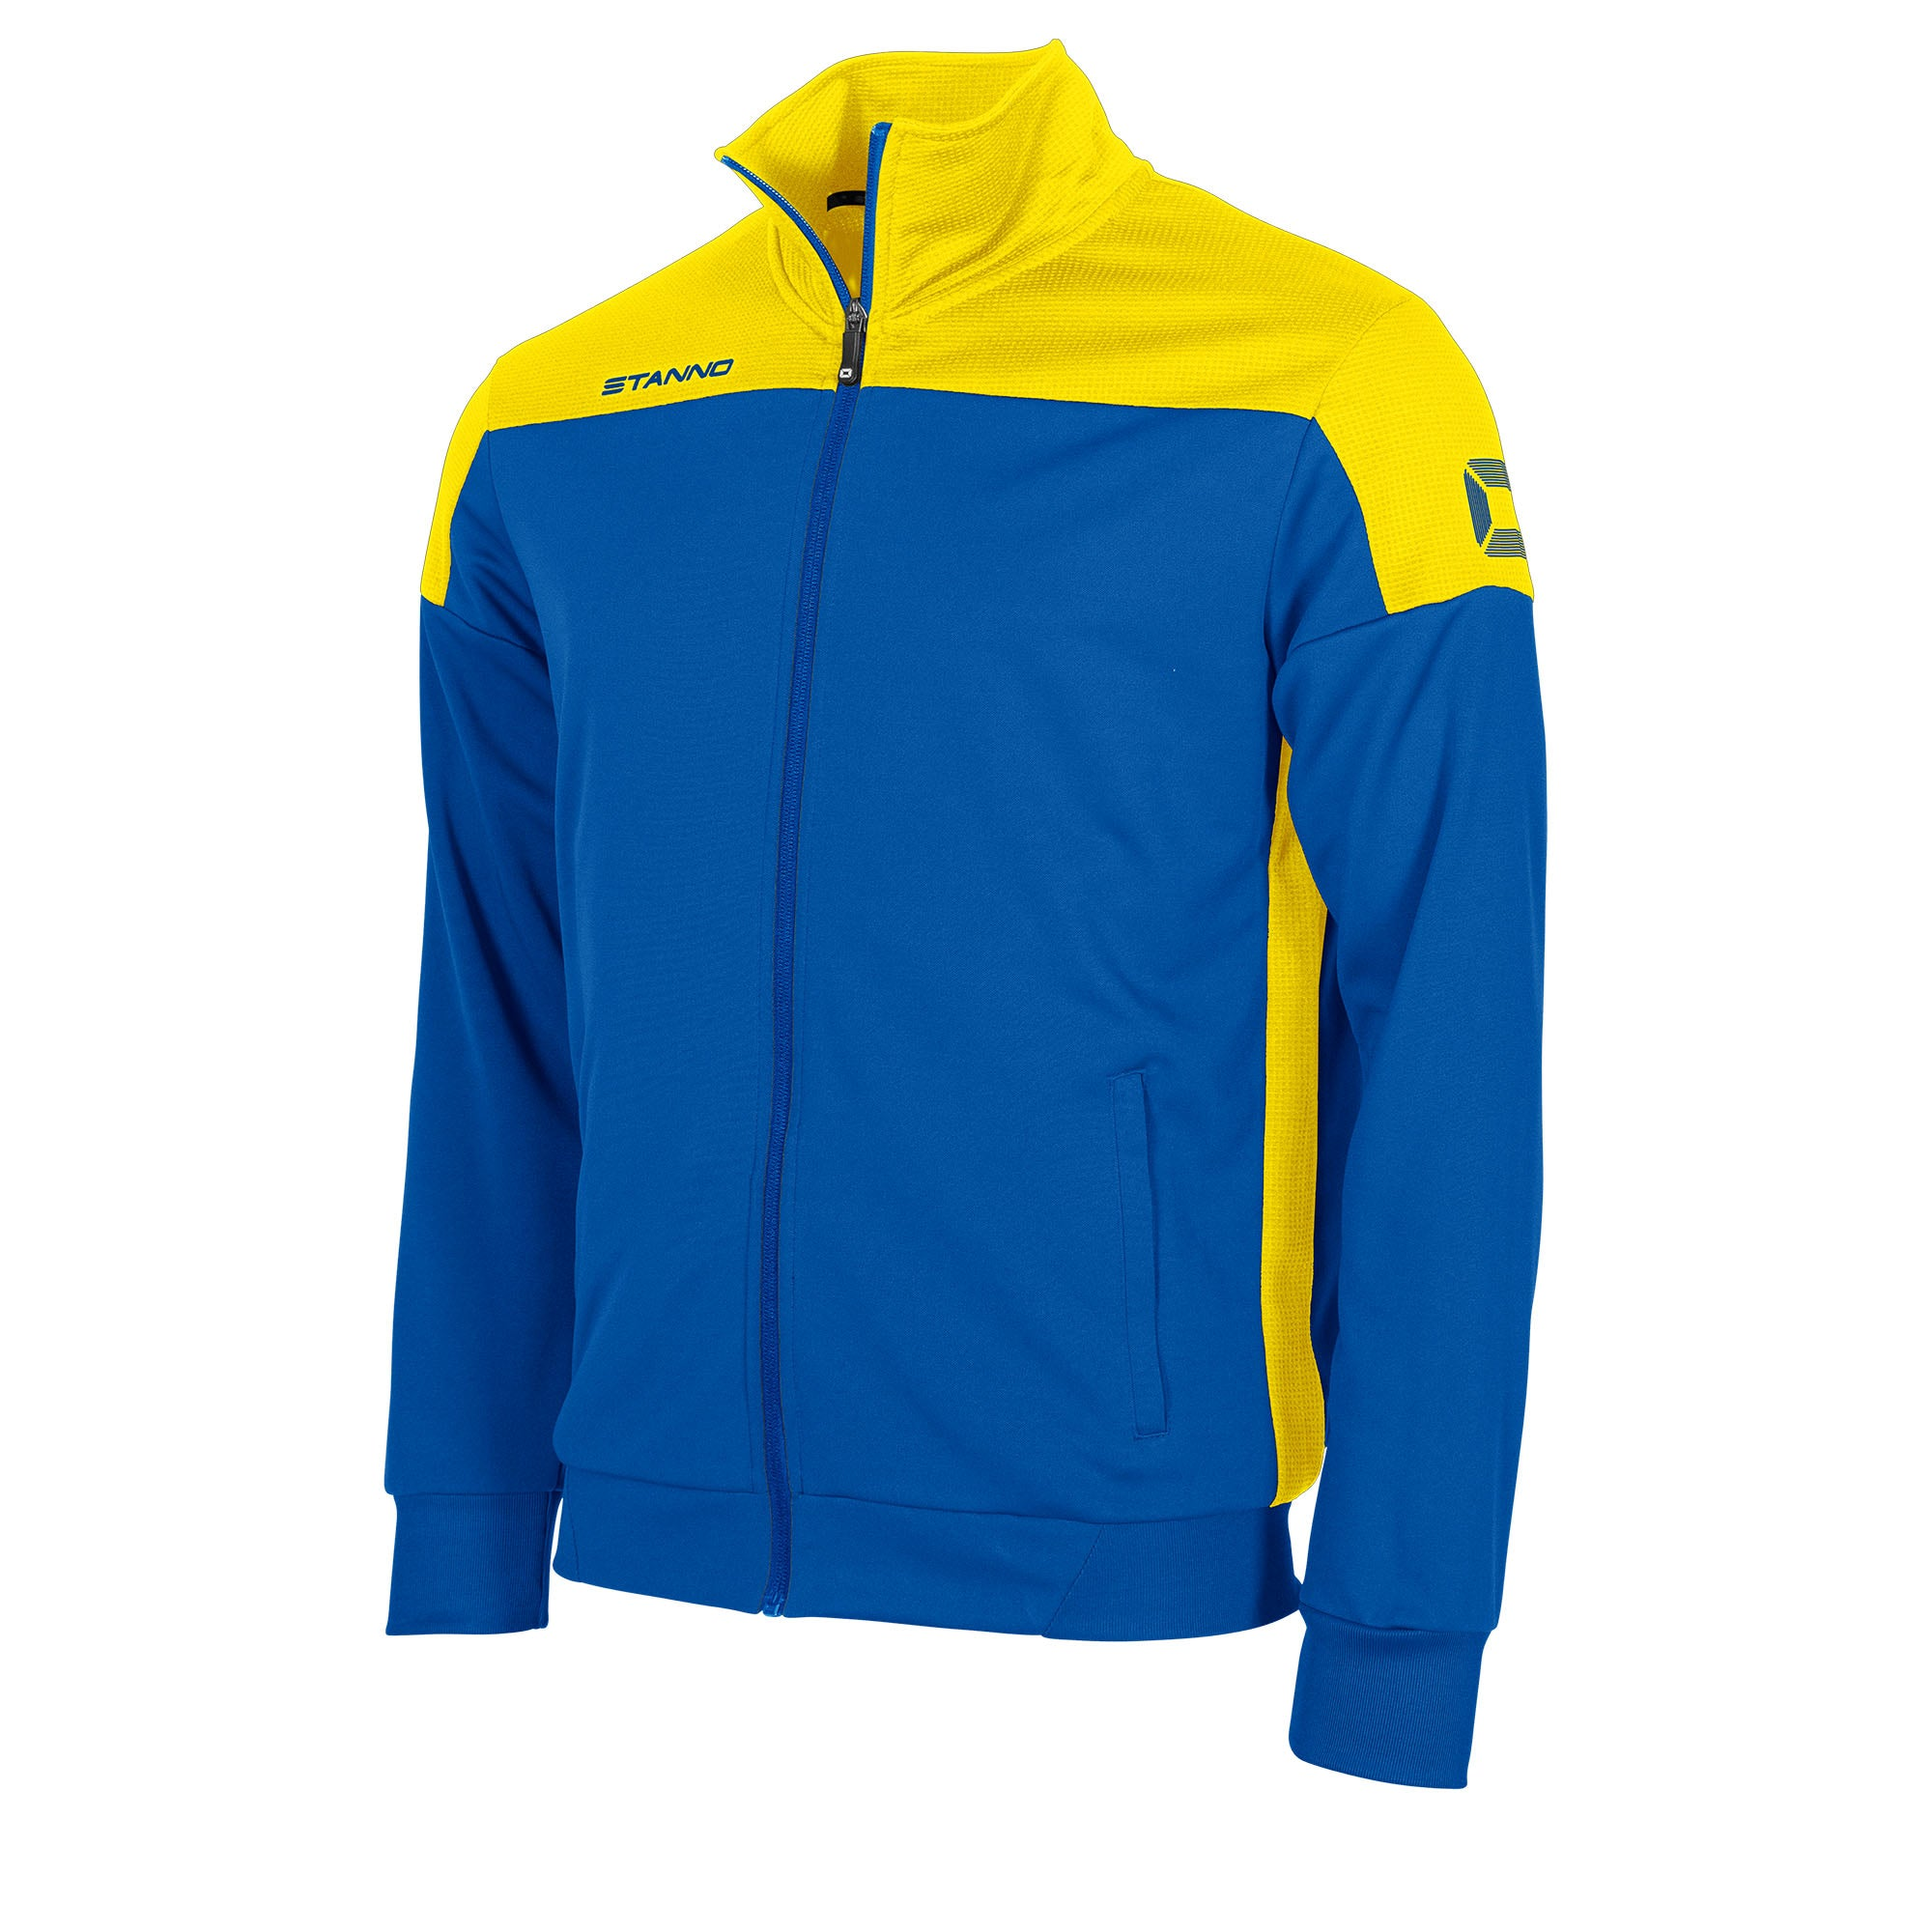 Stanno Pride TTS Jacket full zip in royal blue with yellow contrast shoulders